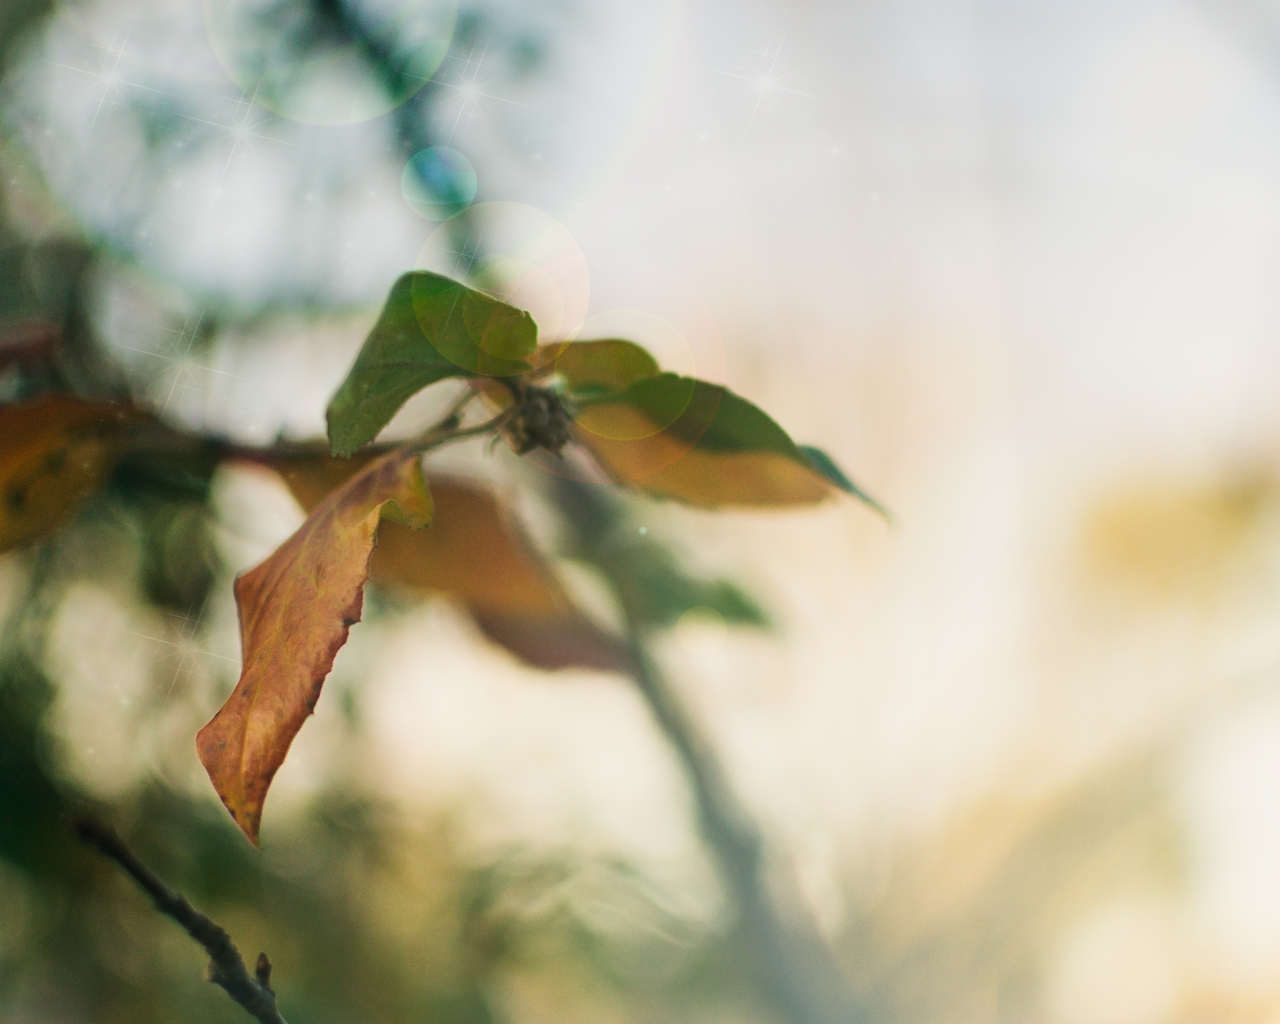 gfancy_hazy-leaves_light-flare